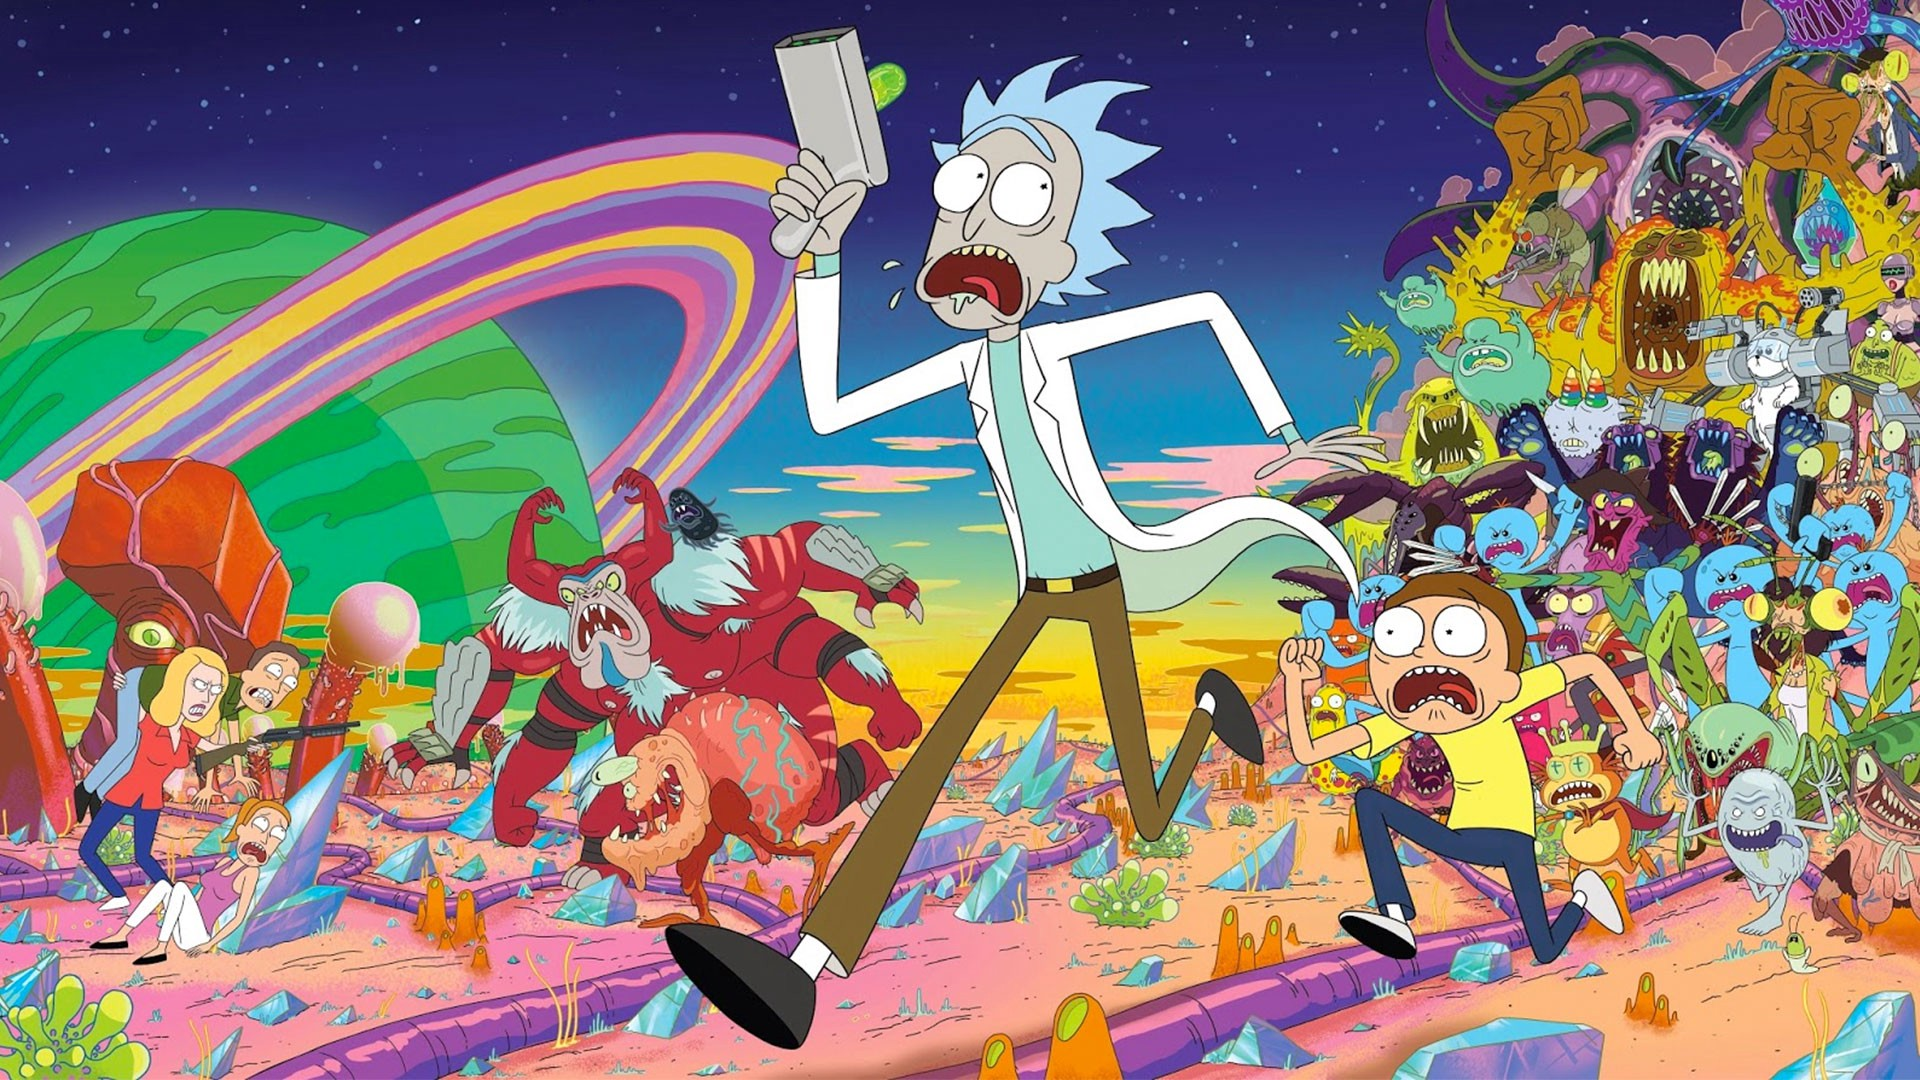 Rick And Morty Season 4 Episode 6 Return Date How To Watch